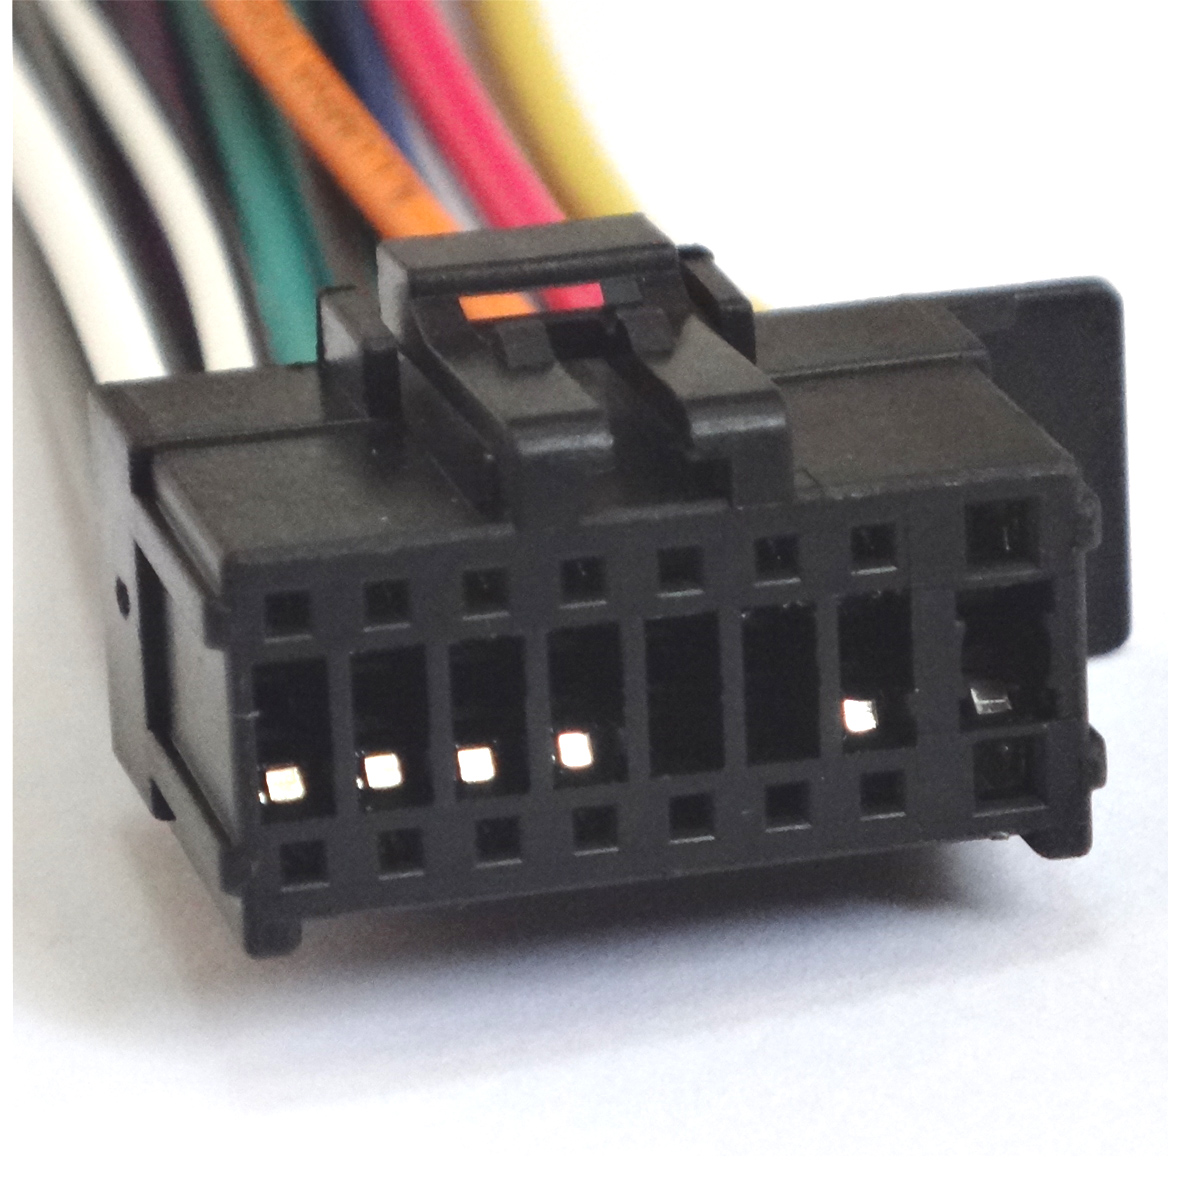 Pioneer Wire Harness For Deh-P5200Hd Deh-P6200Bt Deh-1300Mp Deh-23Ub Deh- 3300Ub